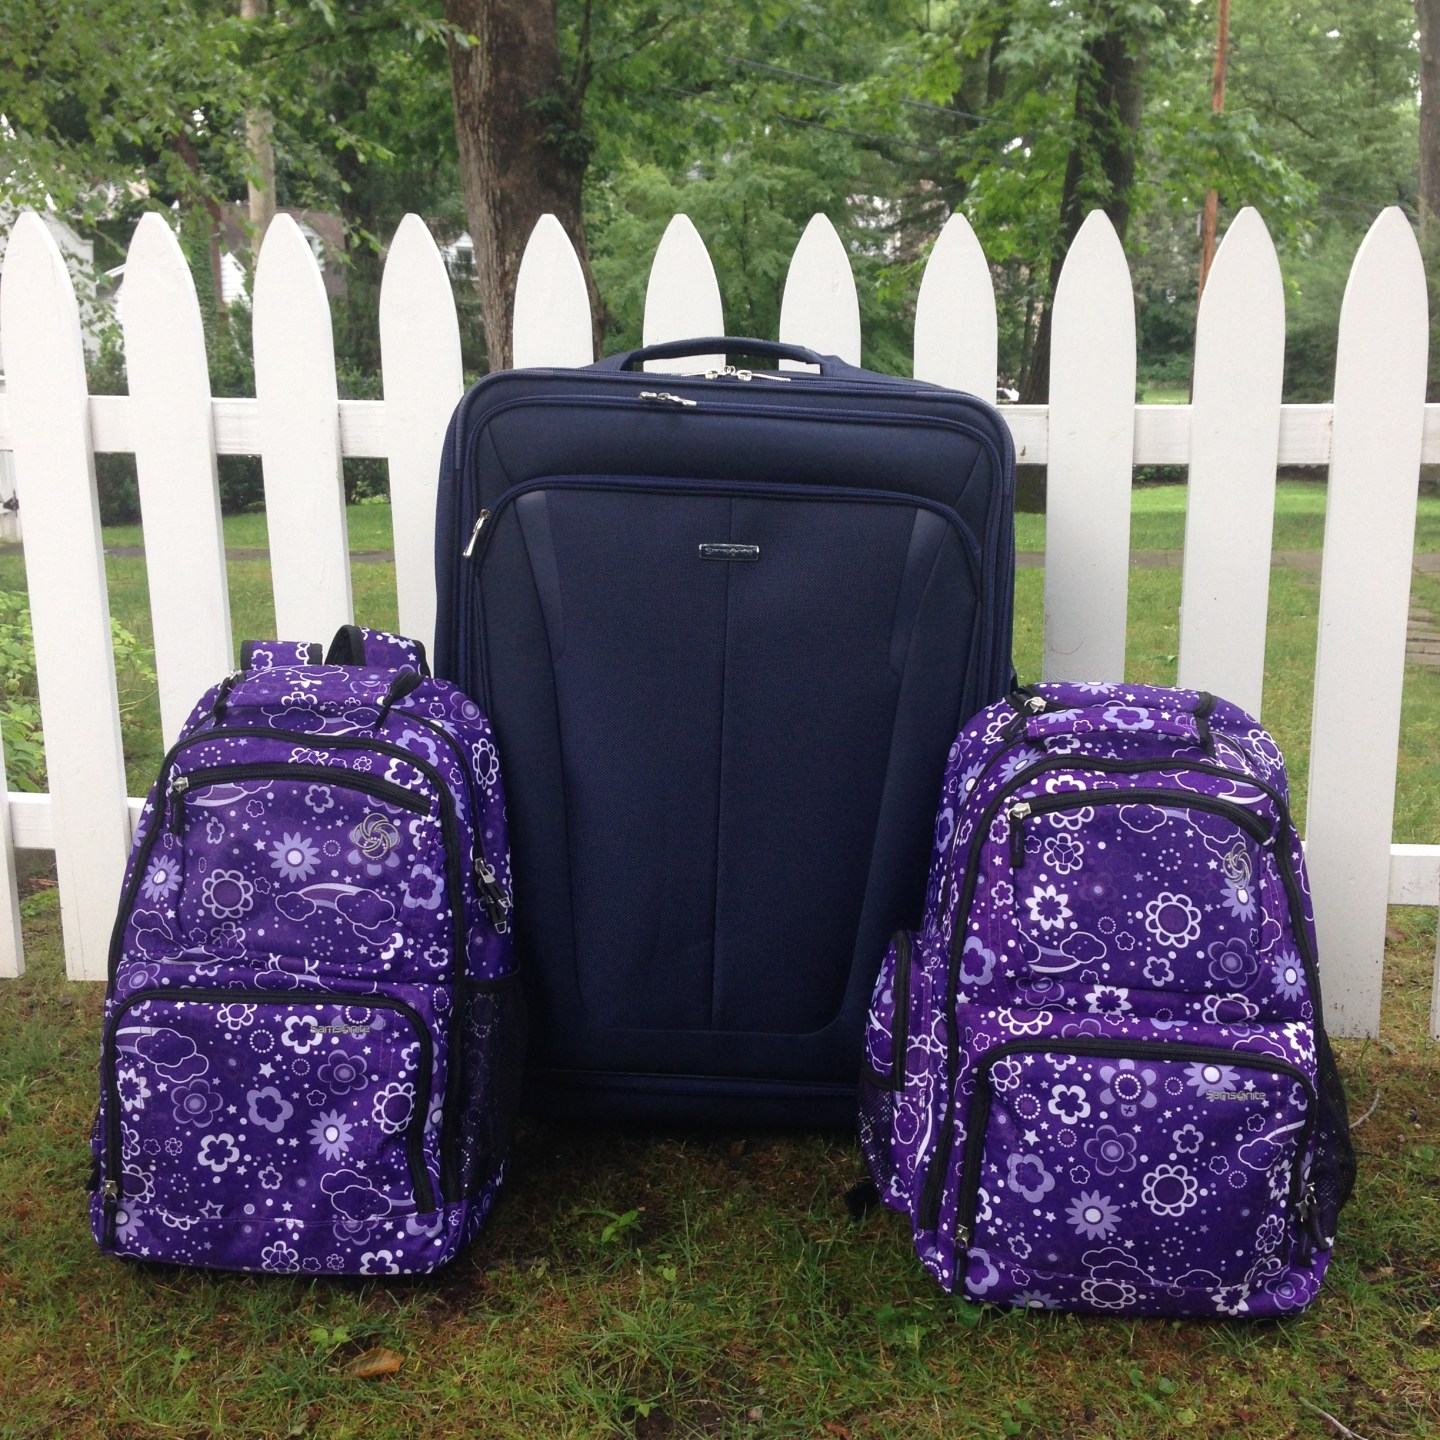 Luggage Revamped (and deeper thoughts)